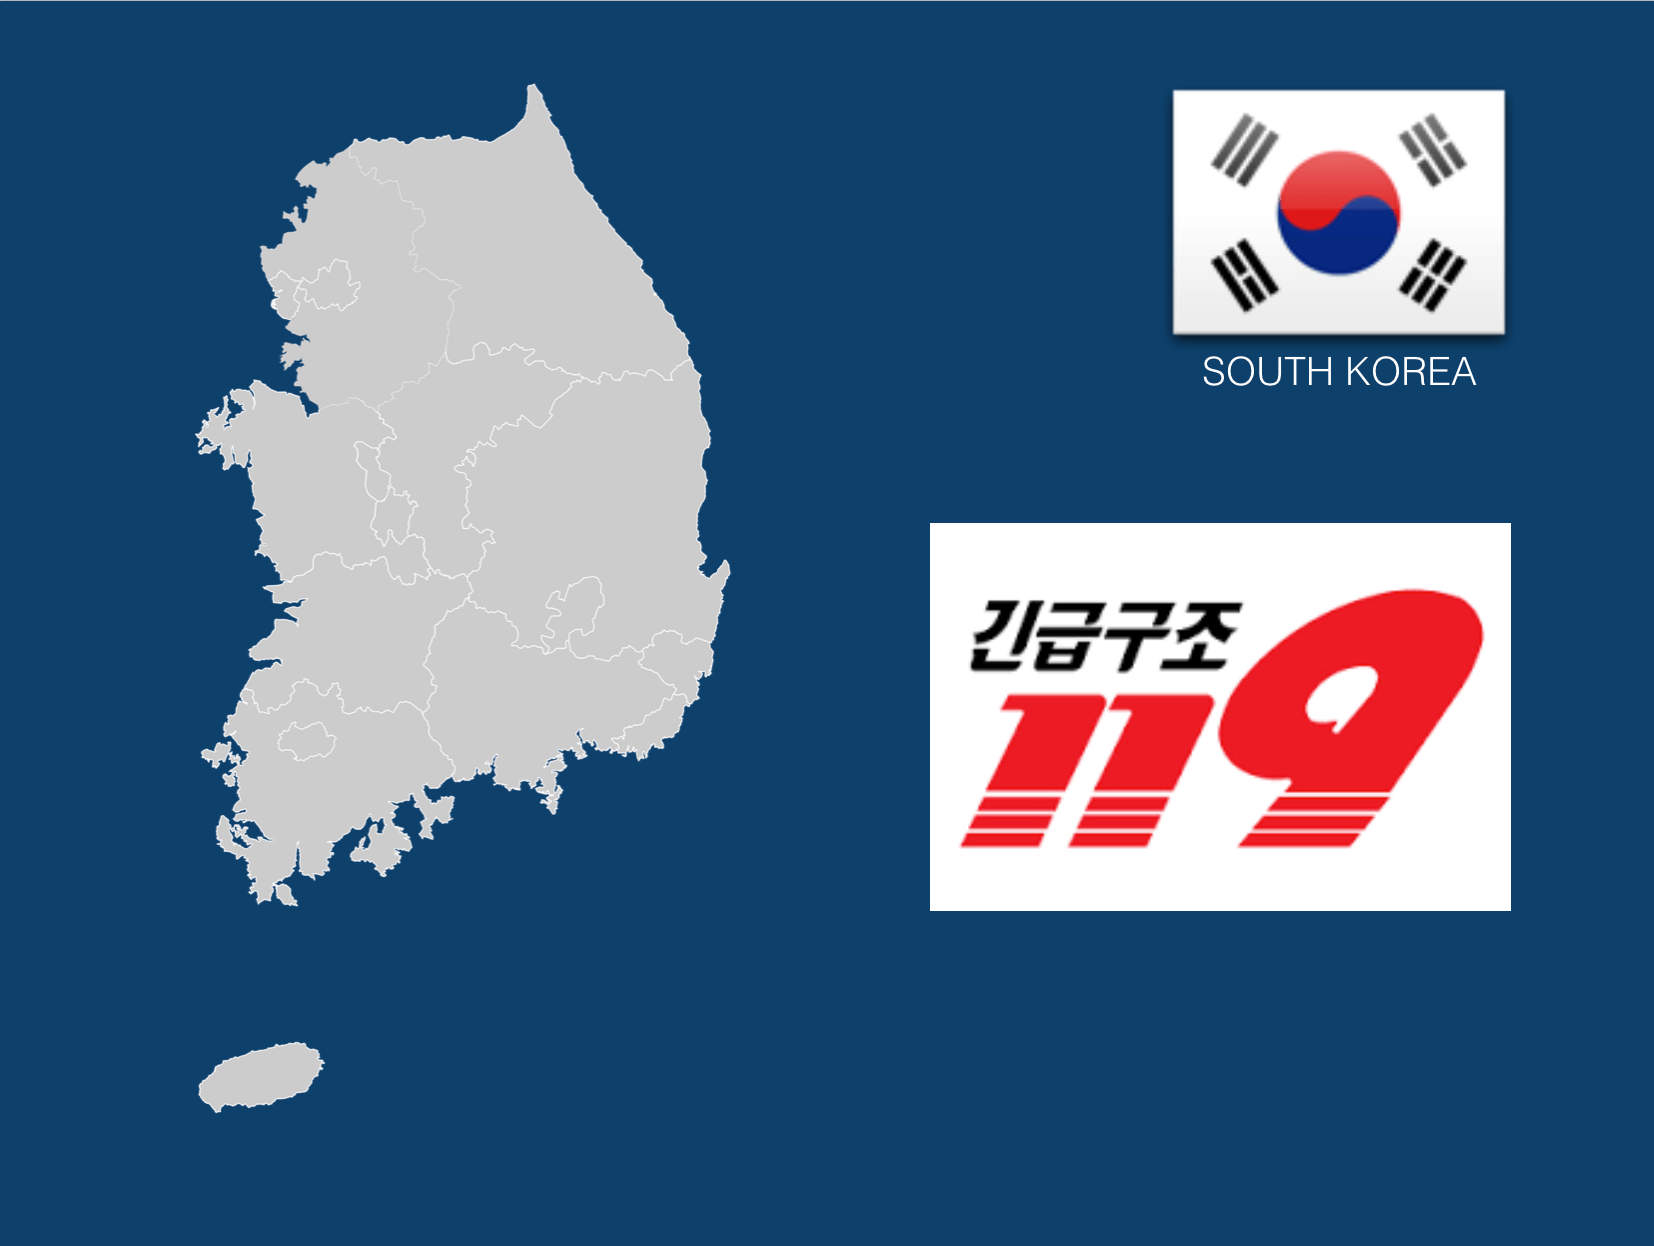 Dial 119 to Call an Ambulance in South Korea